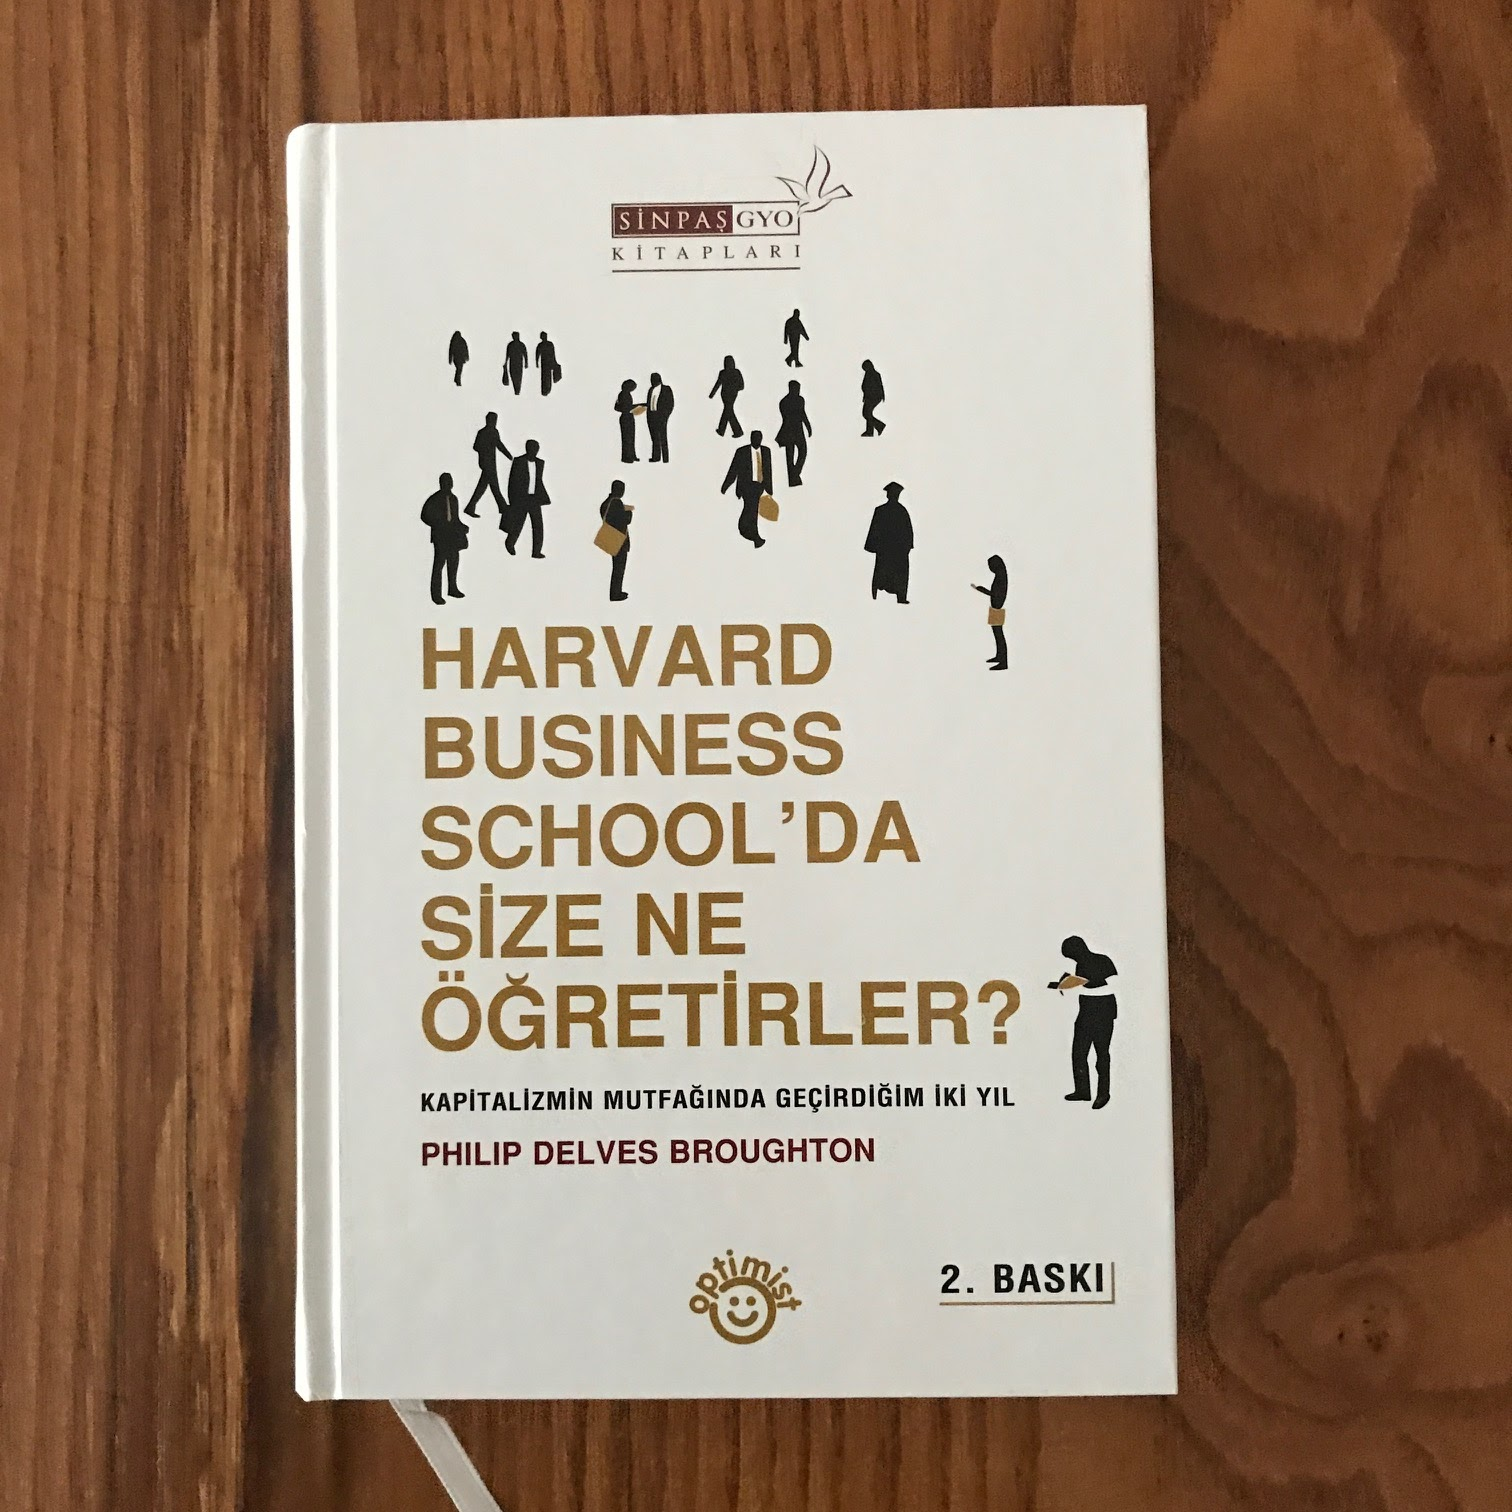 Harvard Business School'da Size Ne Ogretirler